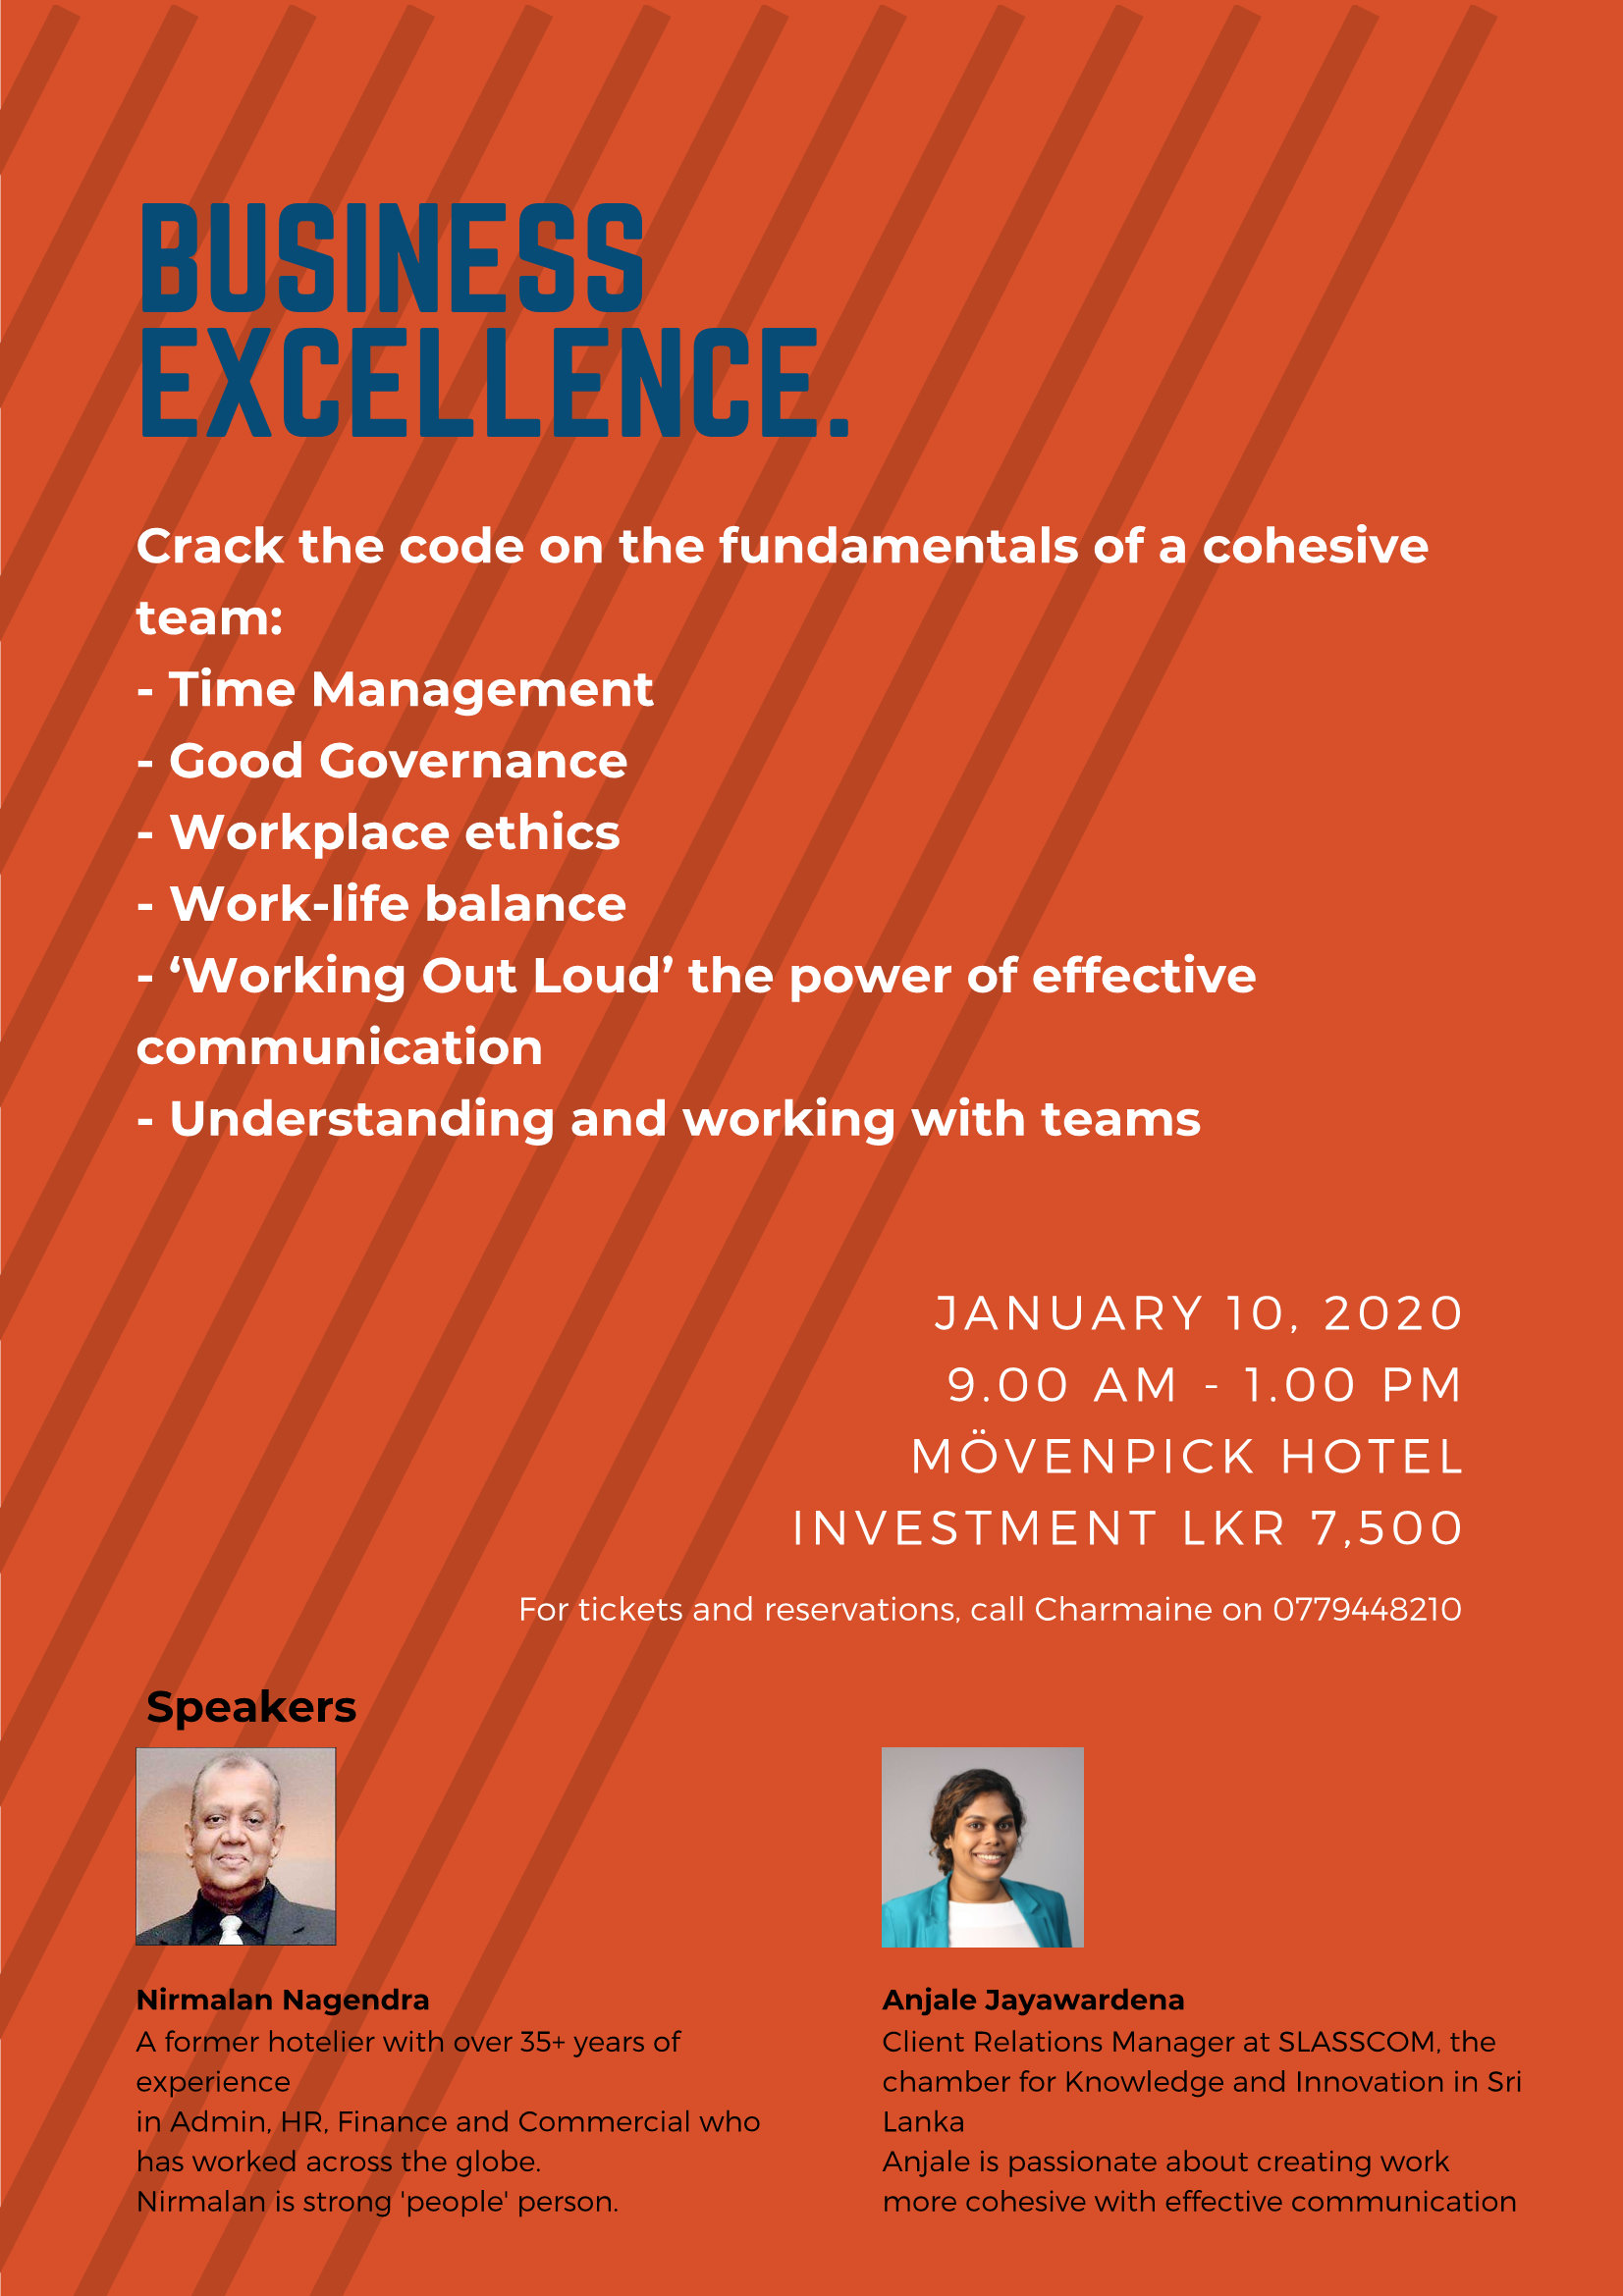 Business Excellence program